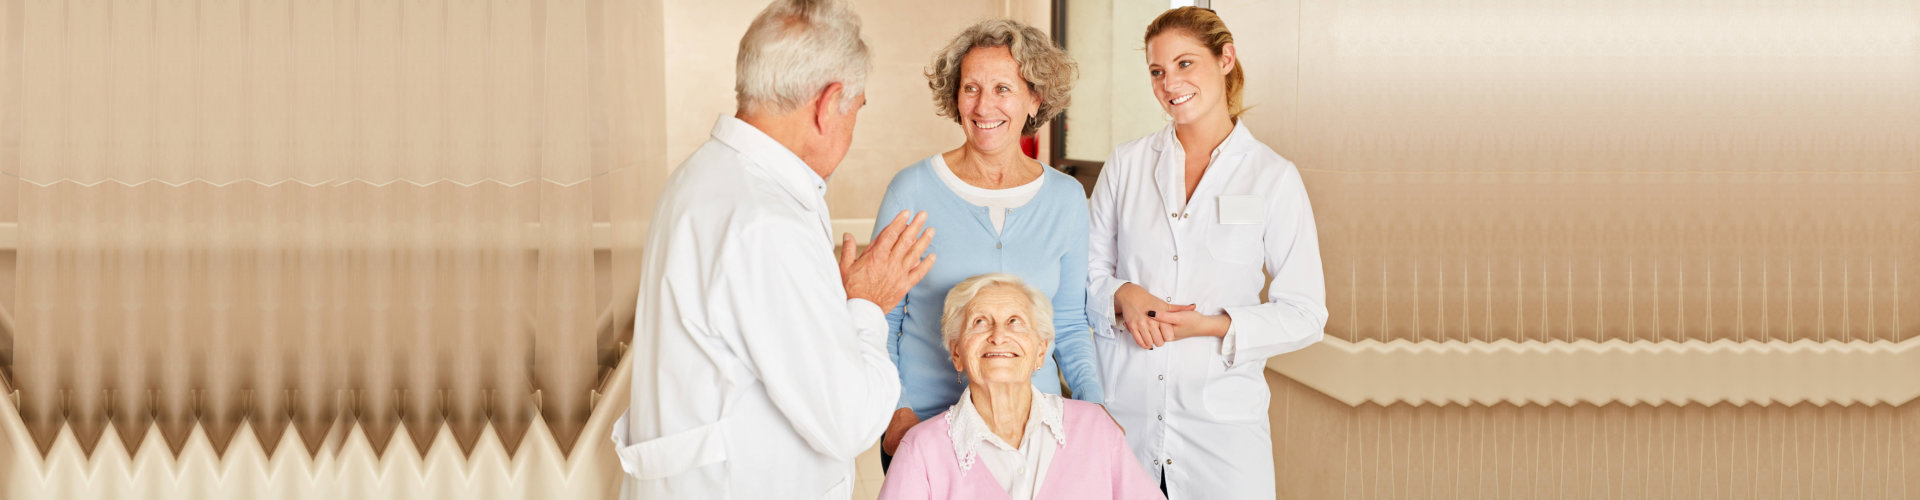 Doctor talking to senior women in rehab and daughter on the hospital corridor